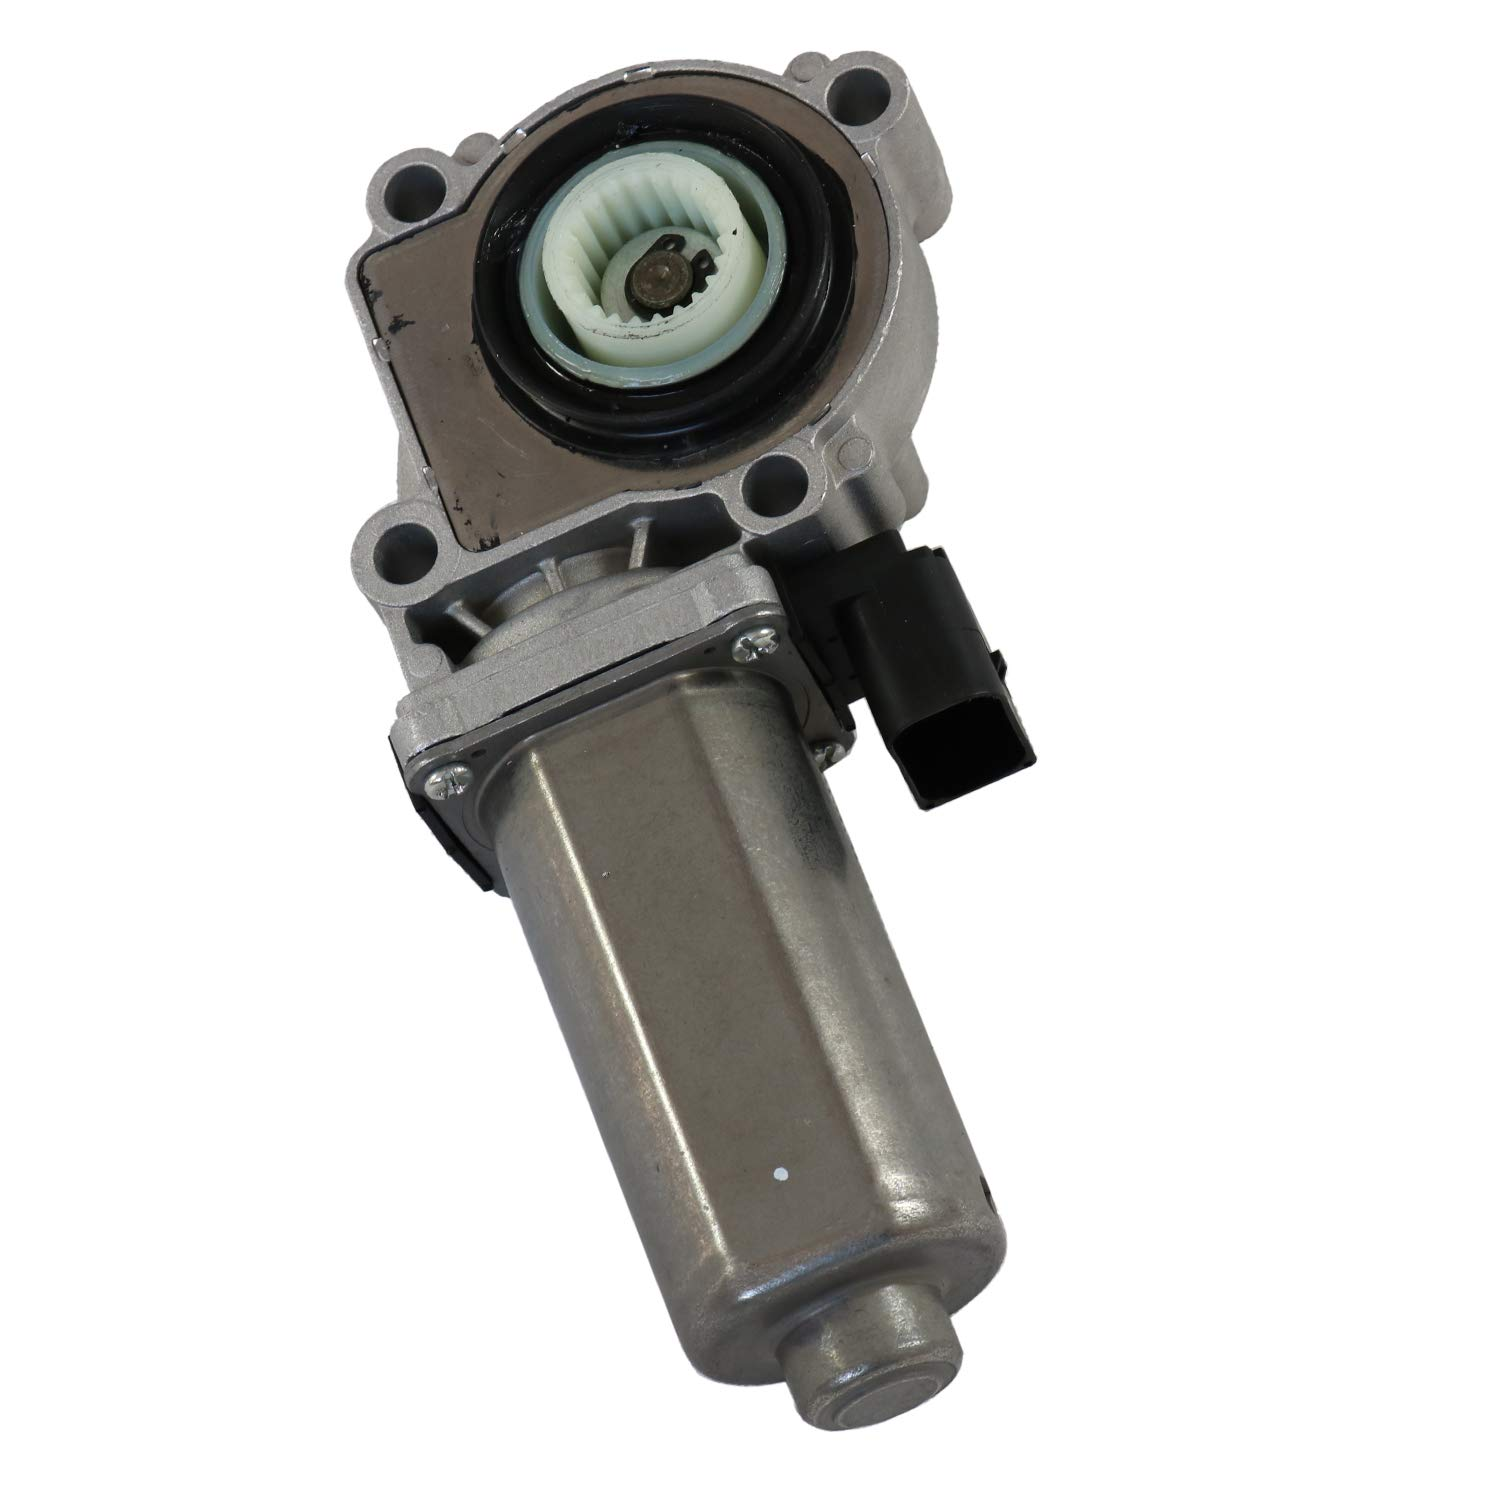 JDMSPEED New Transfer Case Shift Actuator For 2004-2010 BMW X3 X5 Shift Motor 27107566296